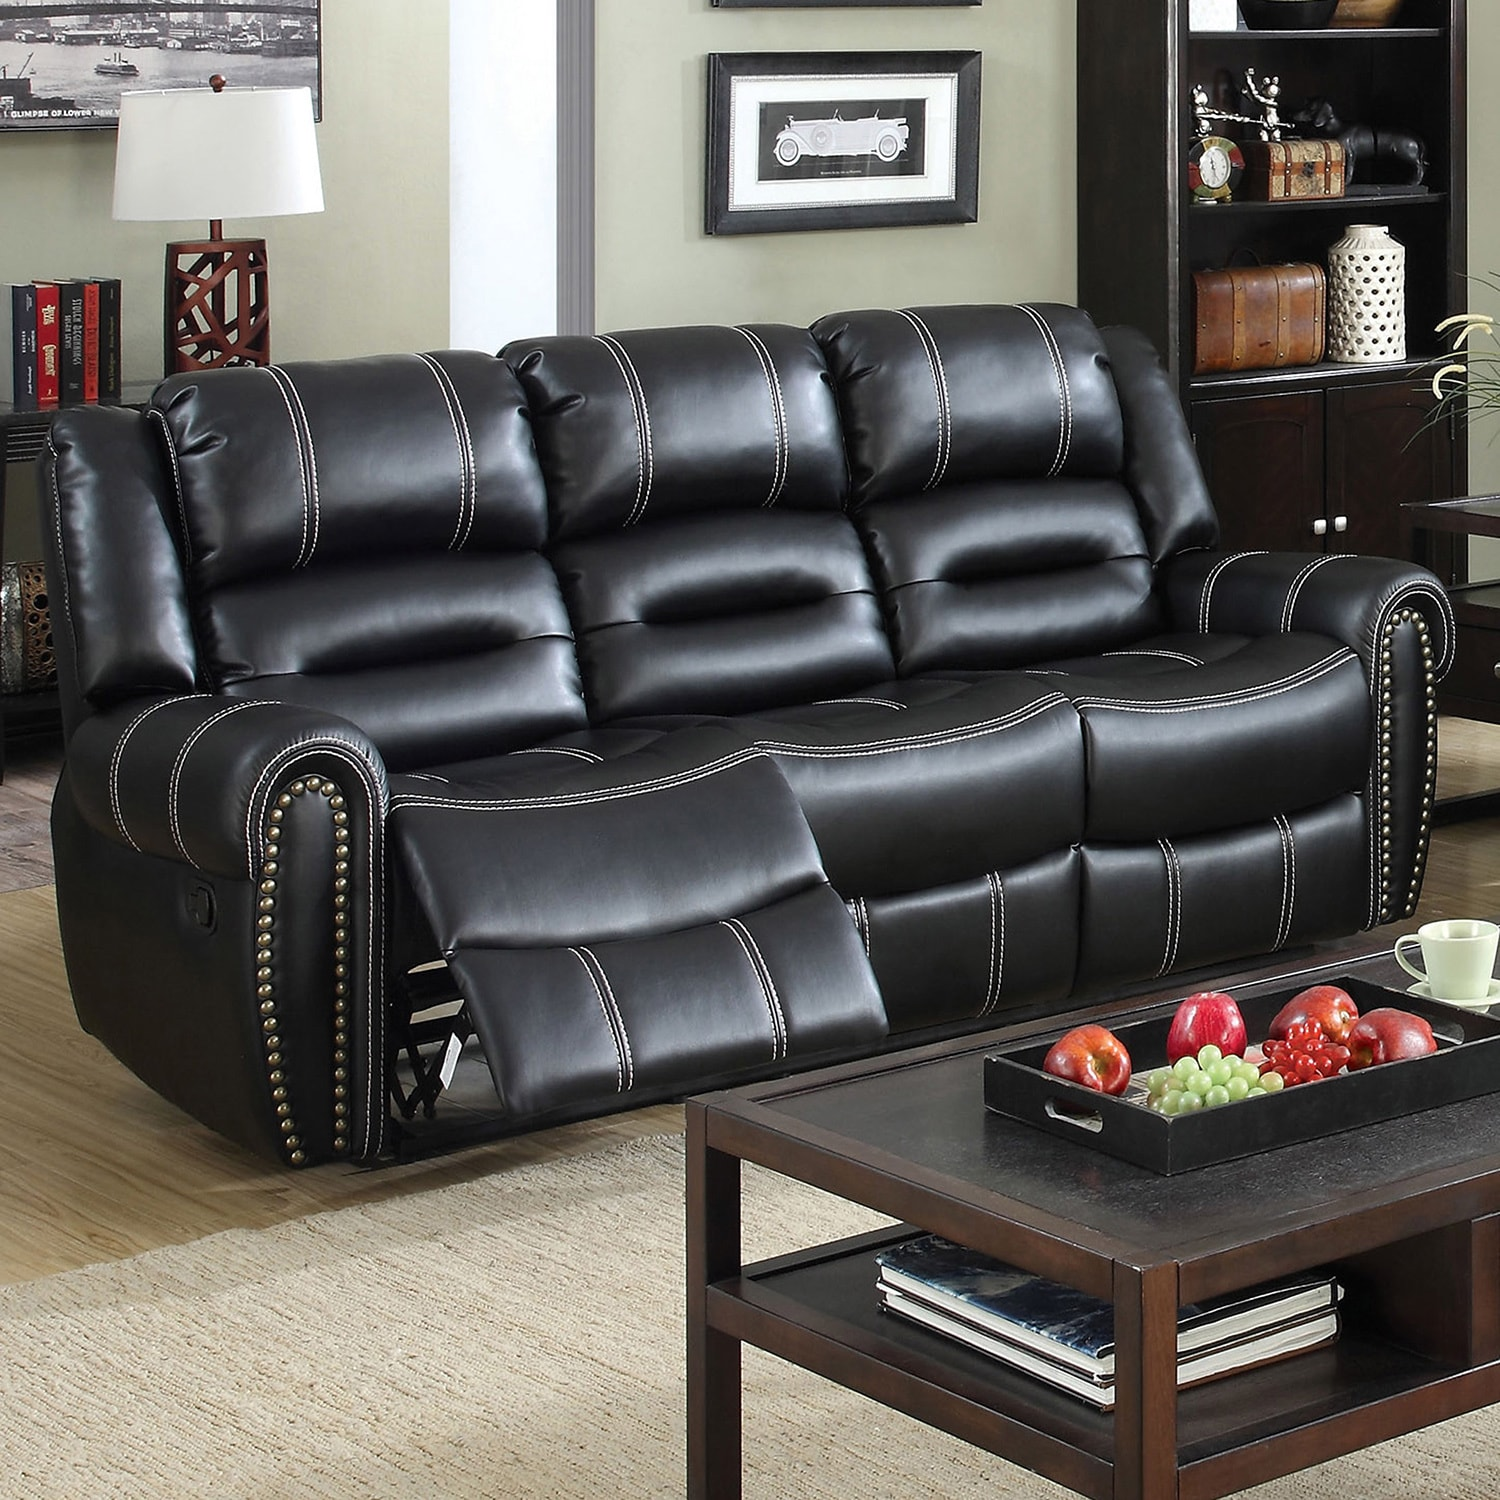 Furniture of America Dylan Black Leatherette Reclining So...